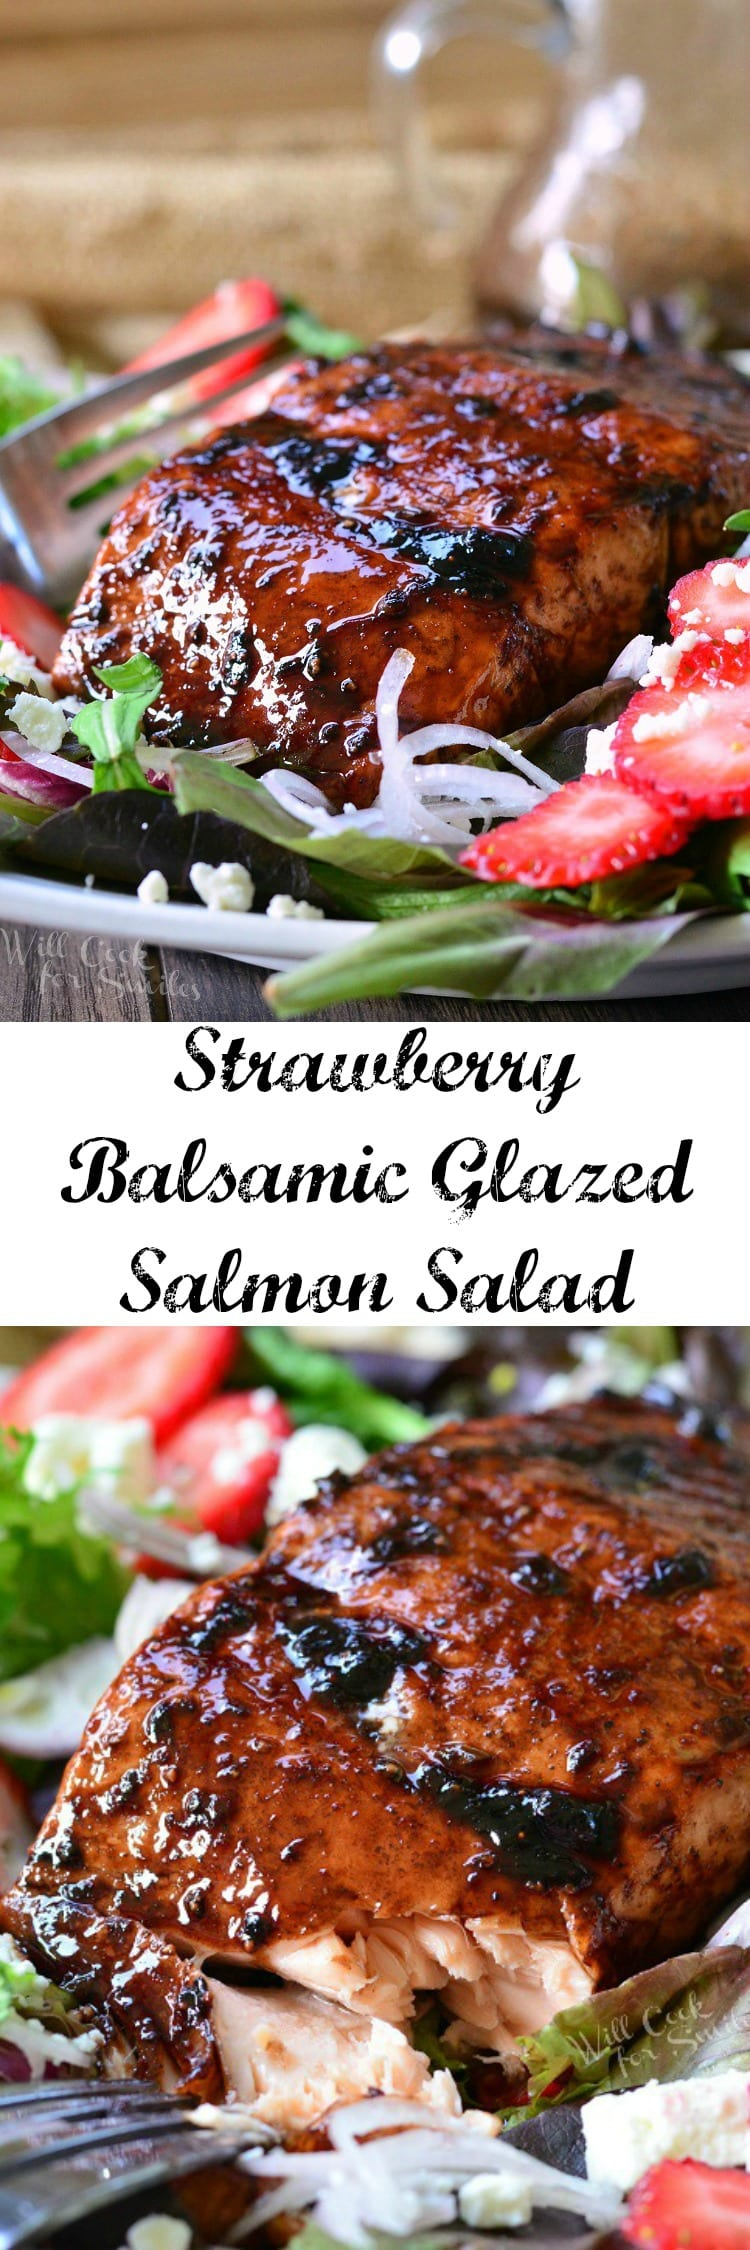 Strawberry Balsamic Glazed Salmon Salad. Summer salad does not get better than this! Succulent baked salmon glazed with sweet and tangy strawberry balsamic reduction and served on a fresh salad.